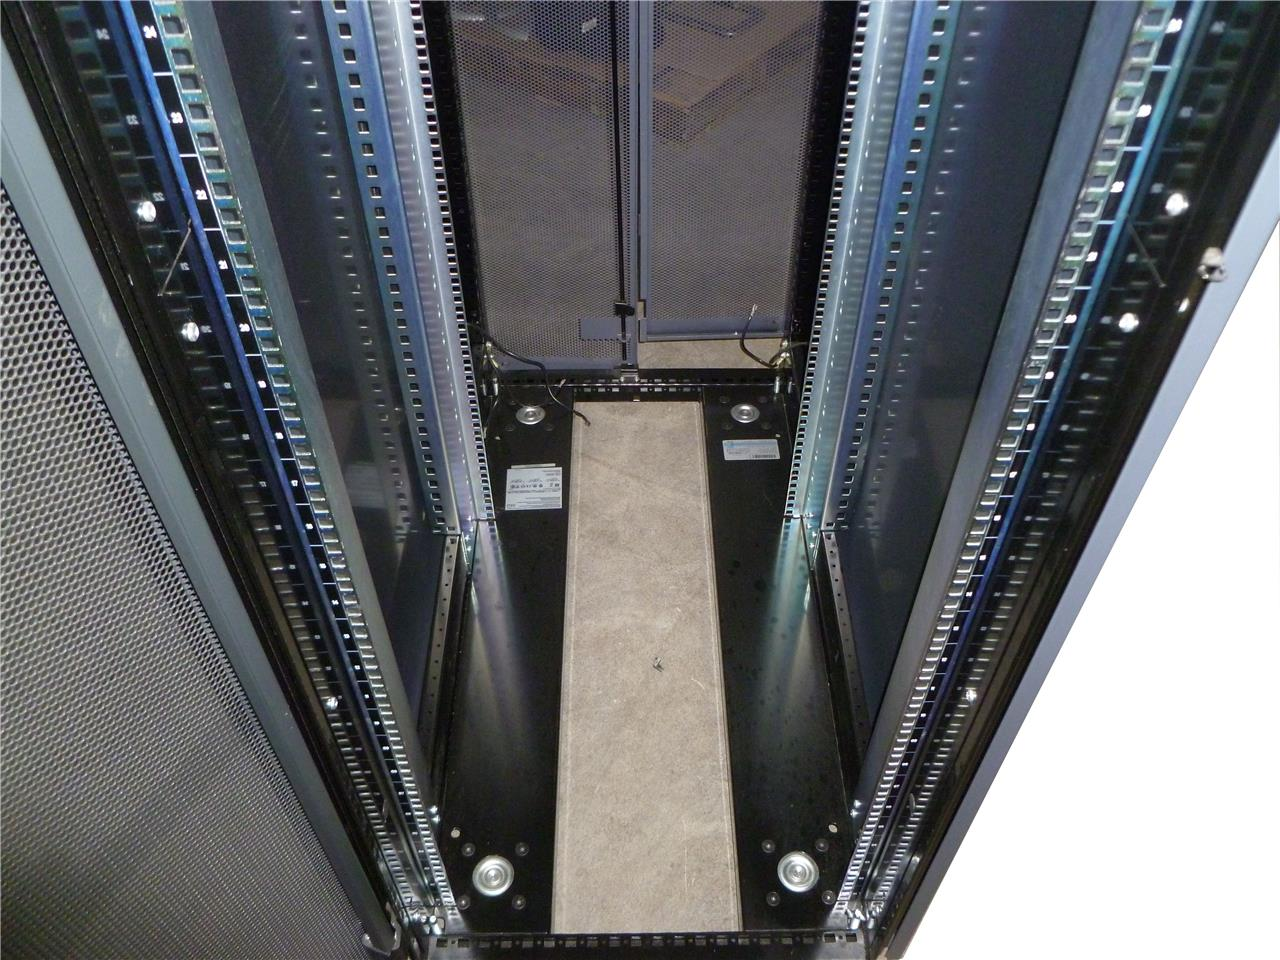 Rittal 42u Server Rack Computer Cabinet Enclosure 19